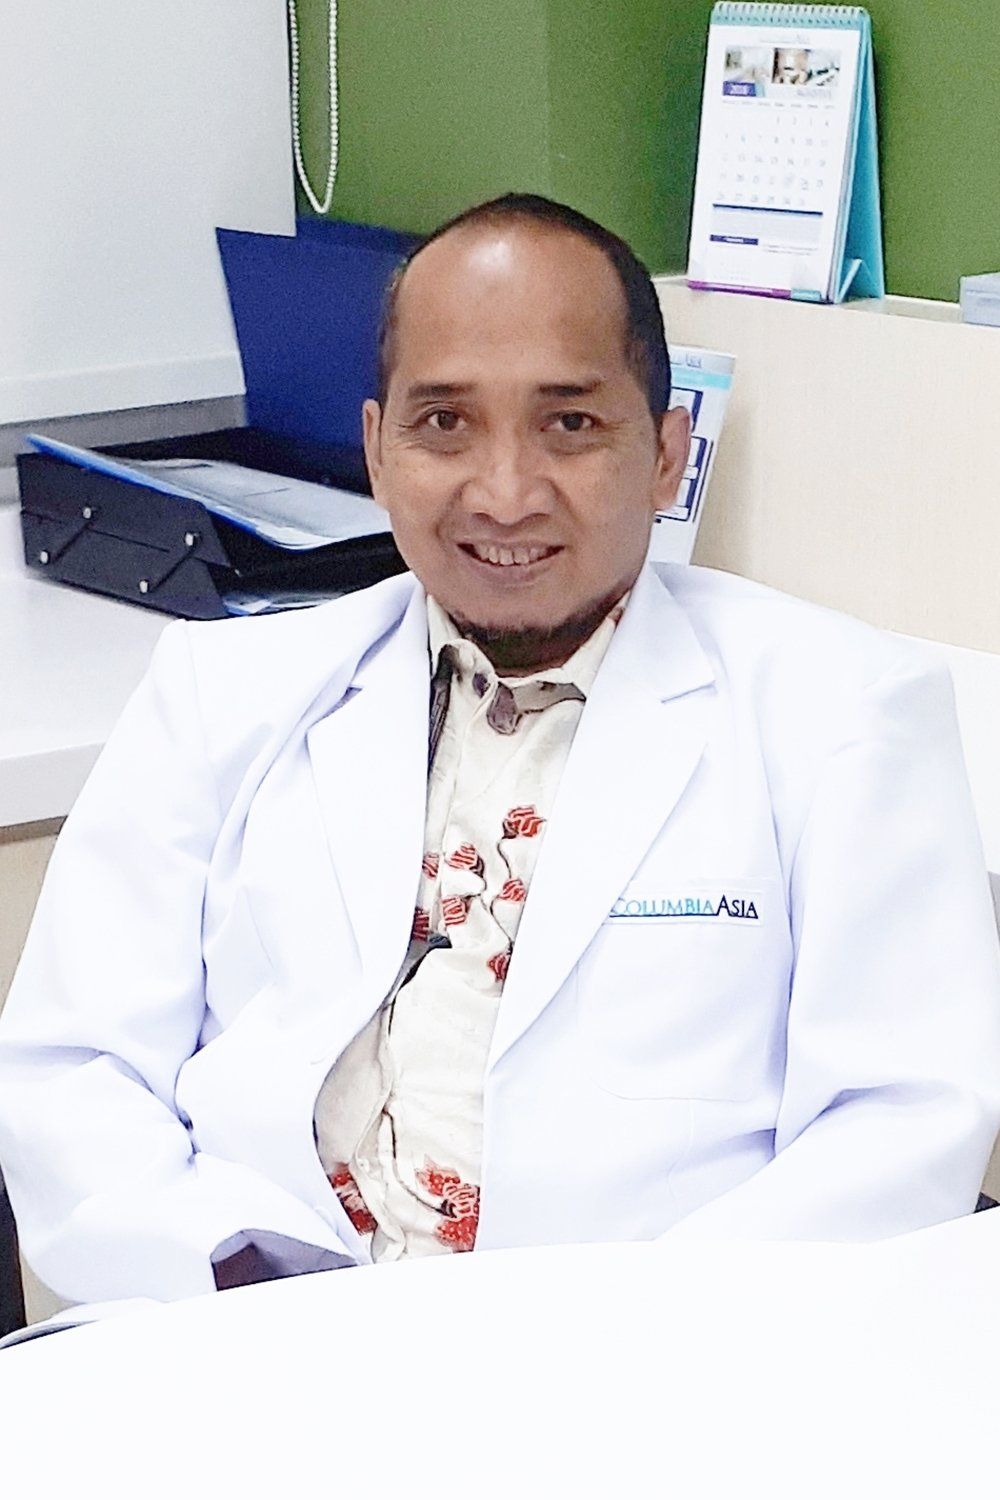 dr. Fajar Firsyada